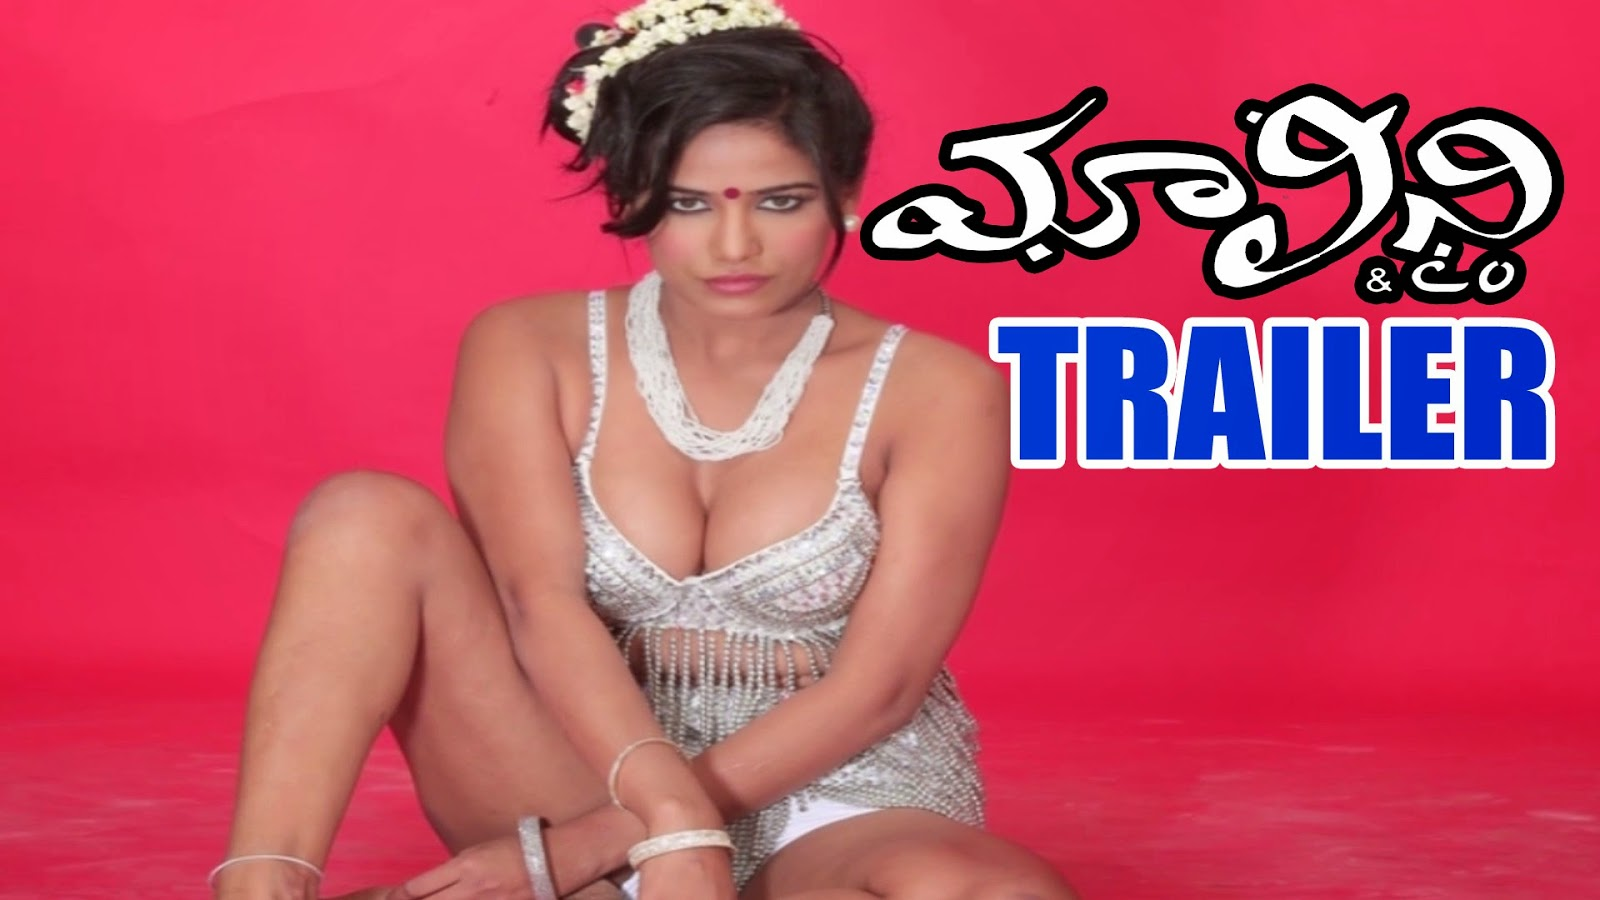 Malini and co Video songs ,Poonam Pandey hot Malini and co video songs